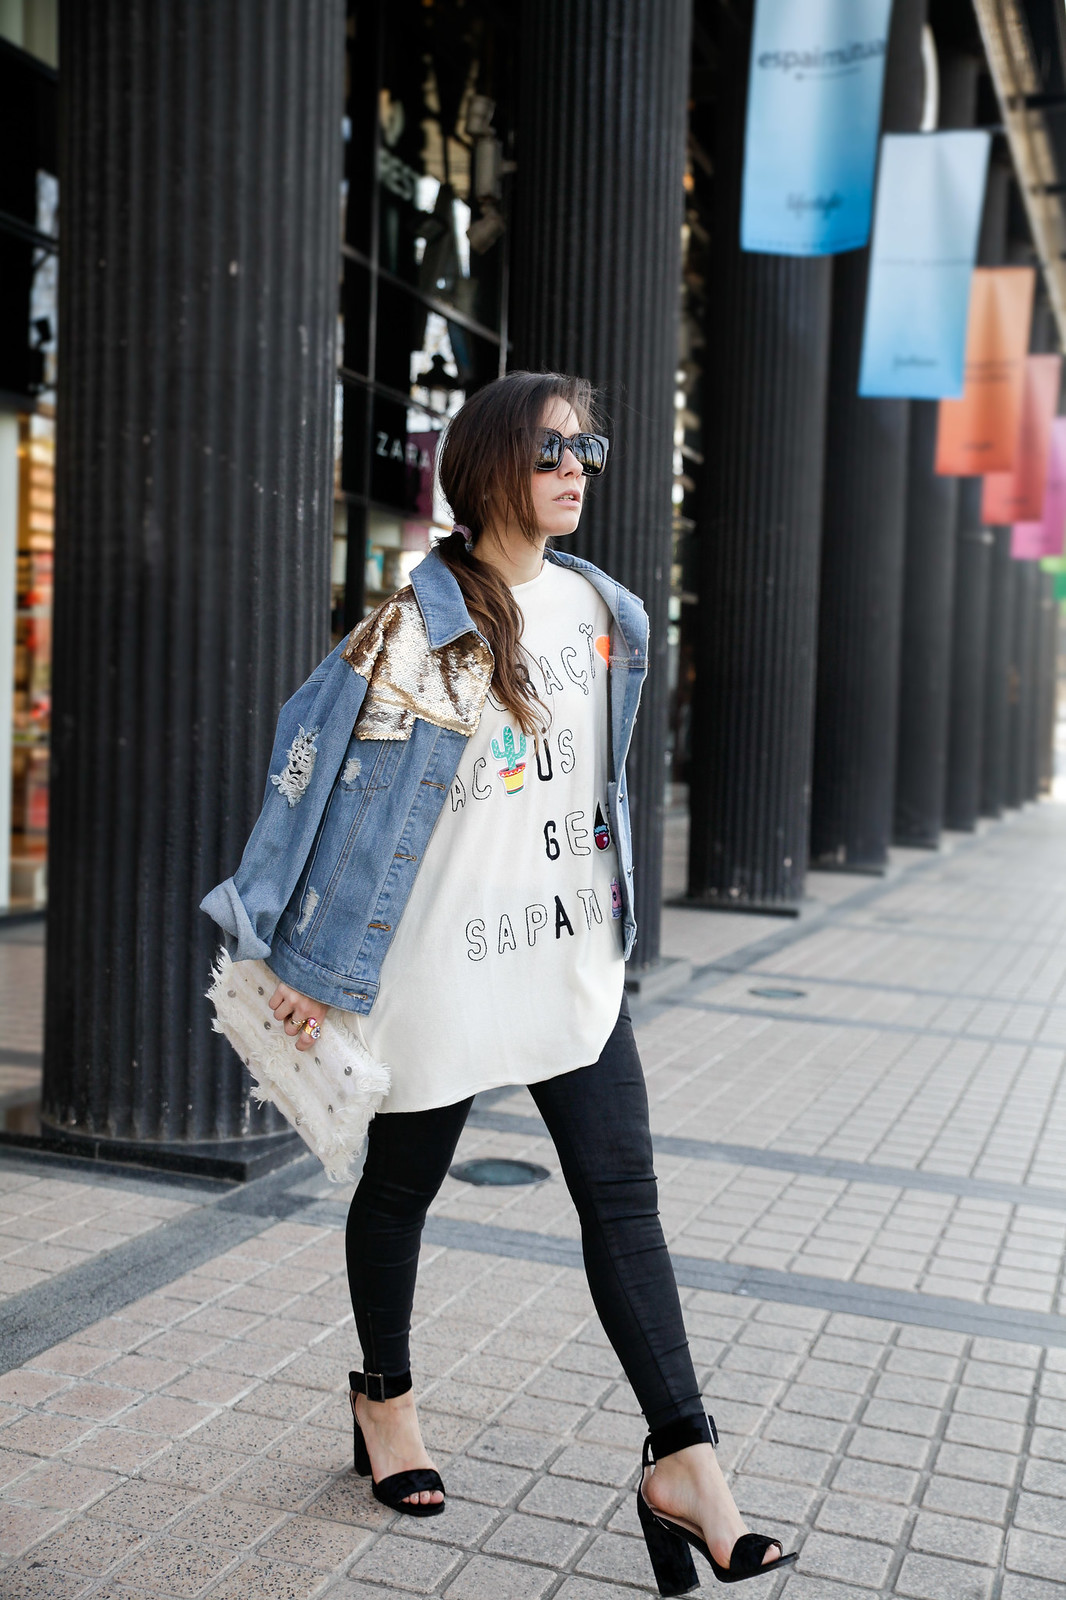 TREND_ ALERT_EMBROIDERY_AND_PATCHES_SEQUINS_DAY STYLE BEST INFLUENCER BARCELONA